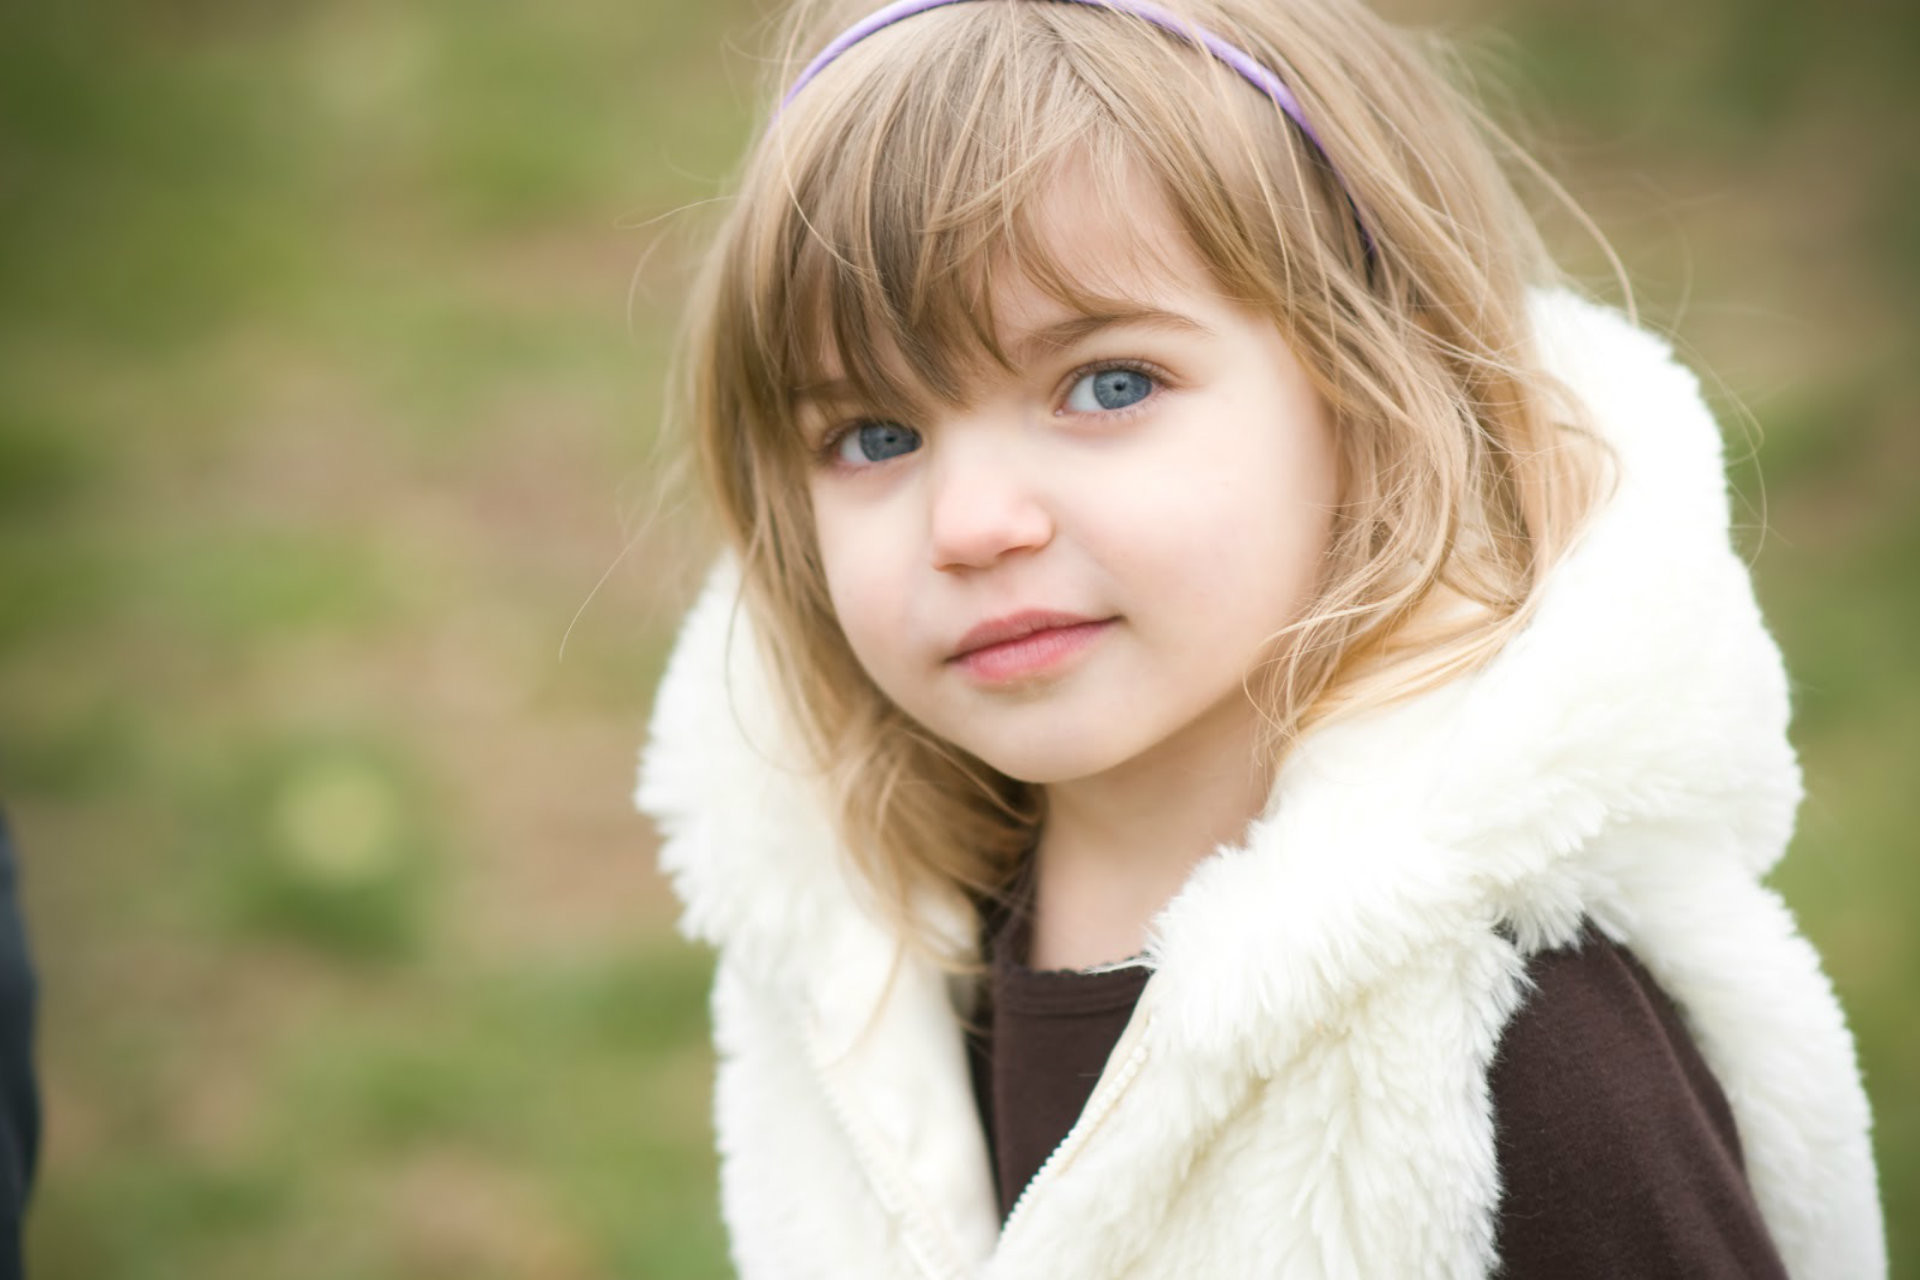 Most Beautiful Baby Girl Wallpaper With Blue Eyes